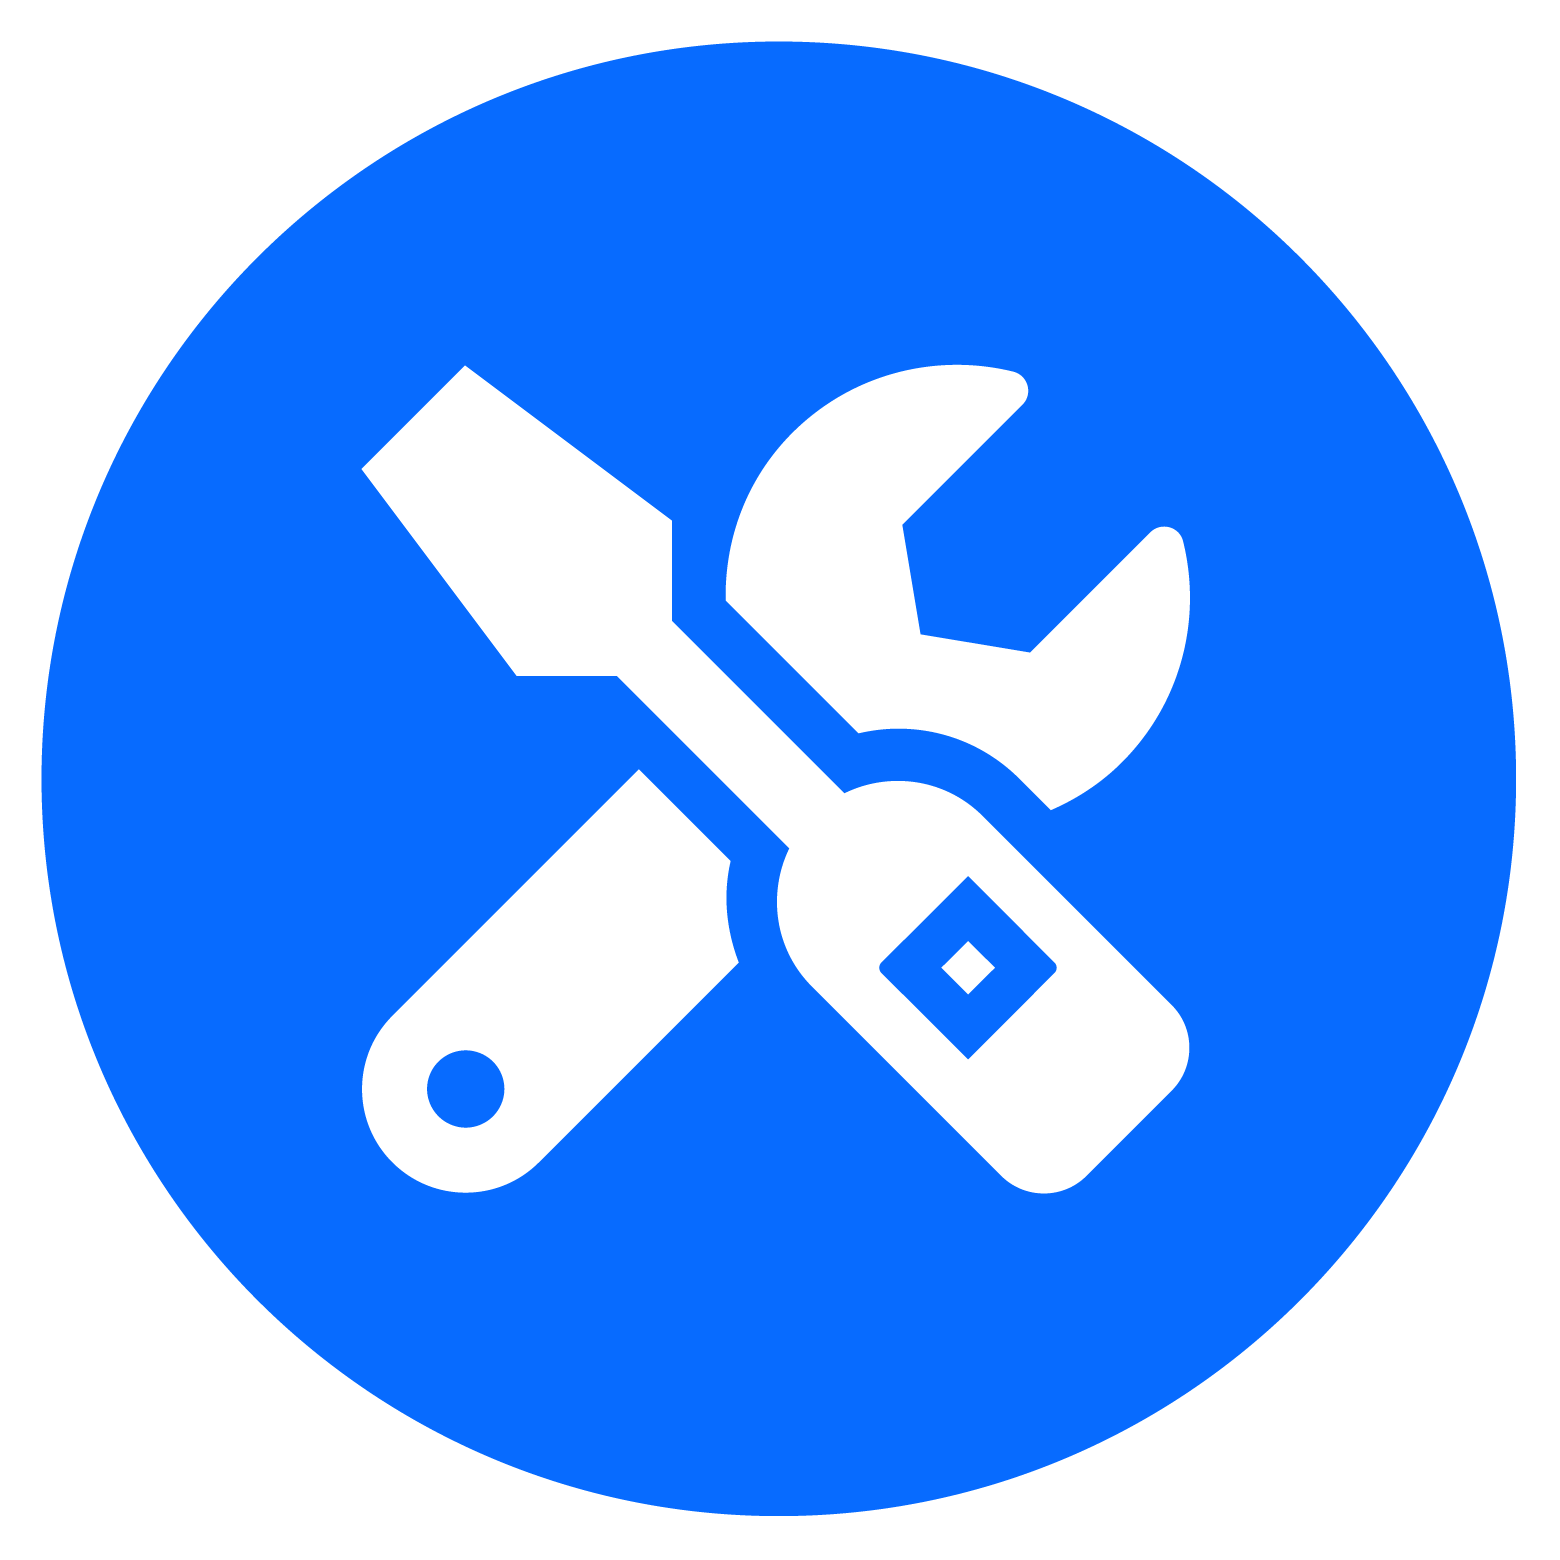 Services icon in color blue (screwdriver and wrench), representing  Confluence implementation and customization to meet customer's business needs.